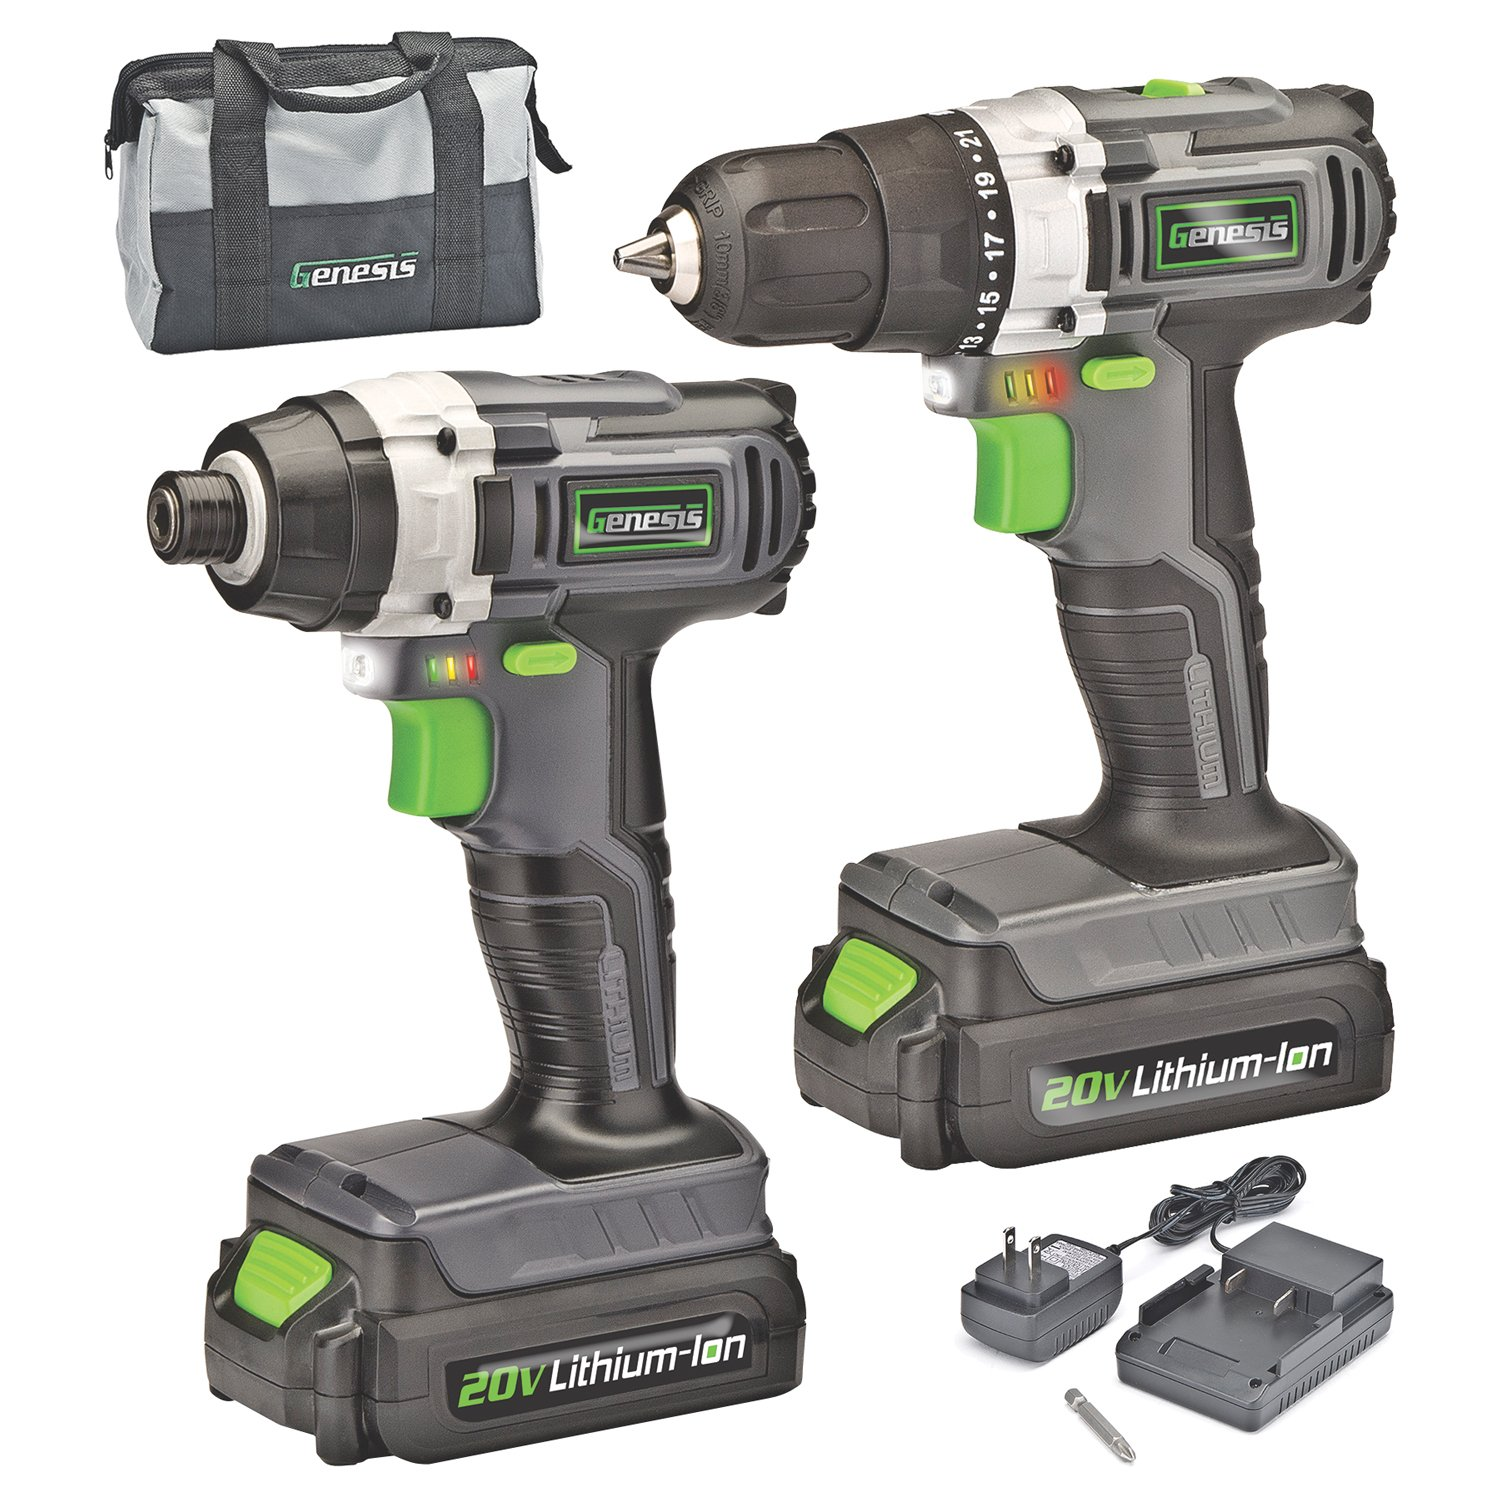 Genesis 20-Volt Lithium-Ion Cordless Drill/Impact Driver Combo Kit (2-Tool)